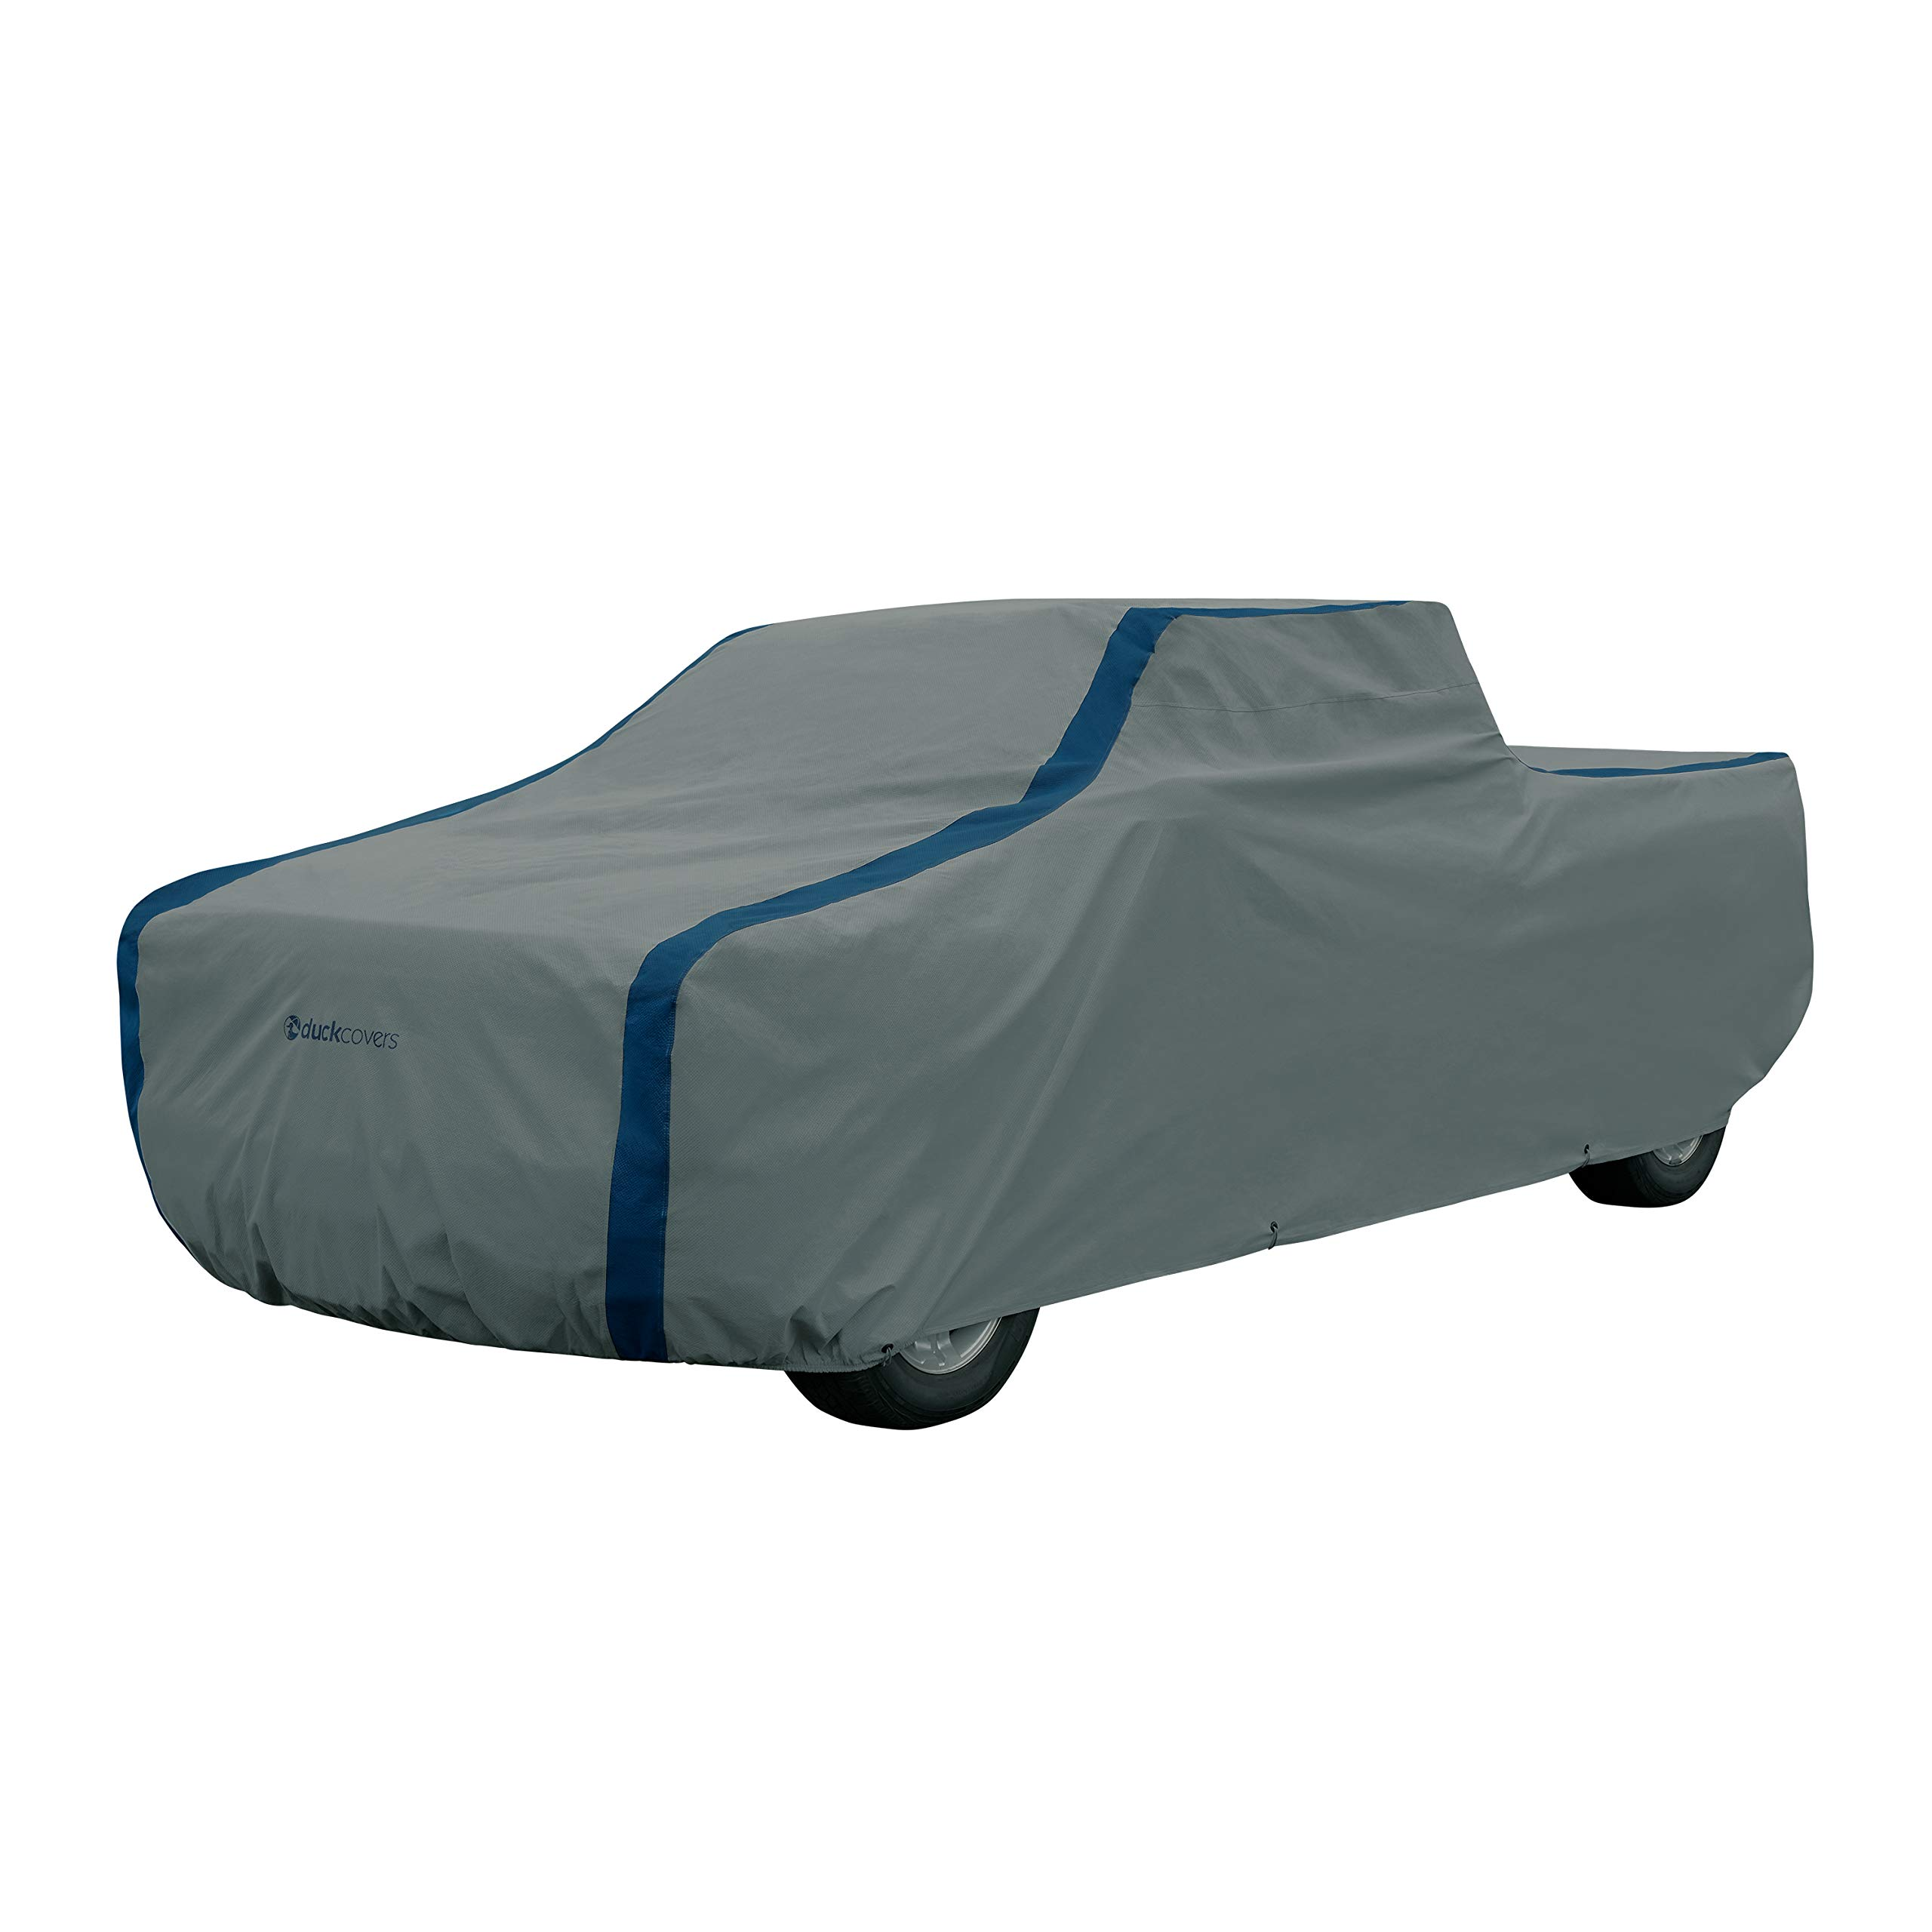 "Duck Covers A3CMT217 Weather Defender Truck Cover with StormFlow, Standard Cab, Short Beds up to 17'11""L"